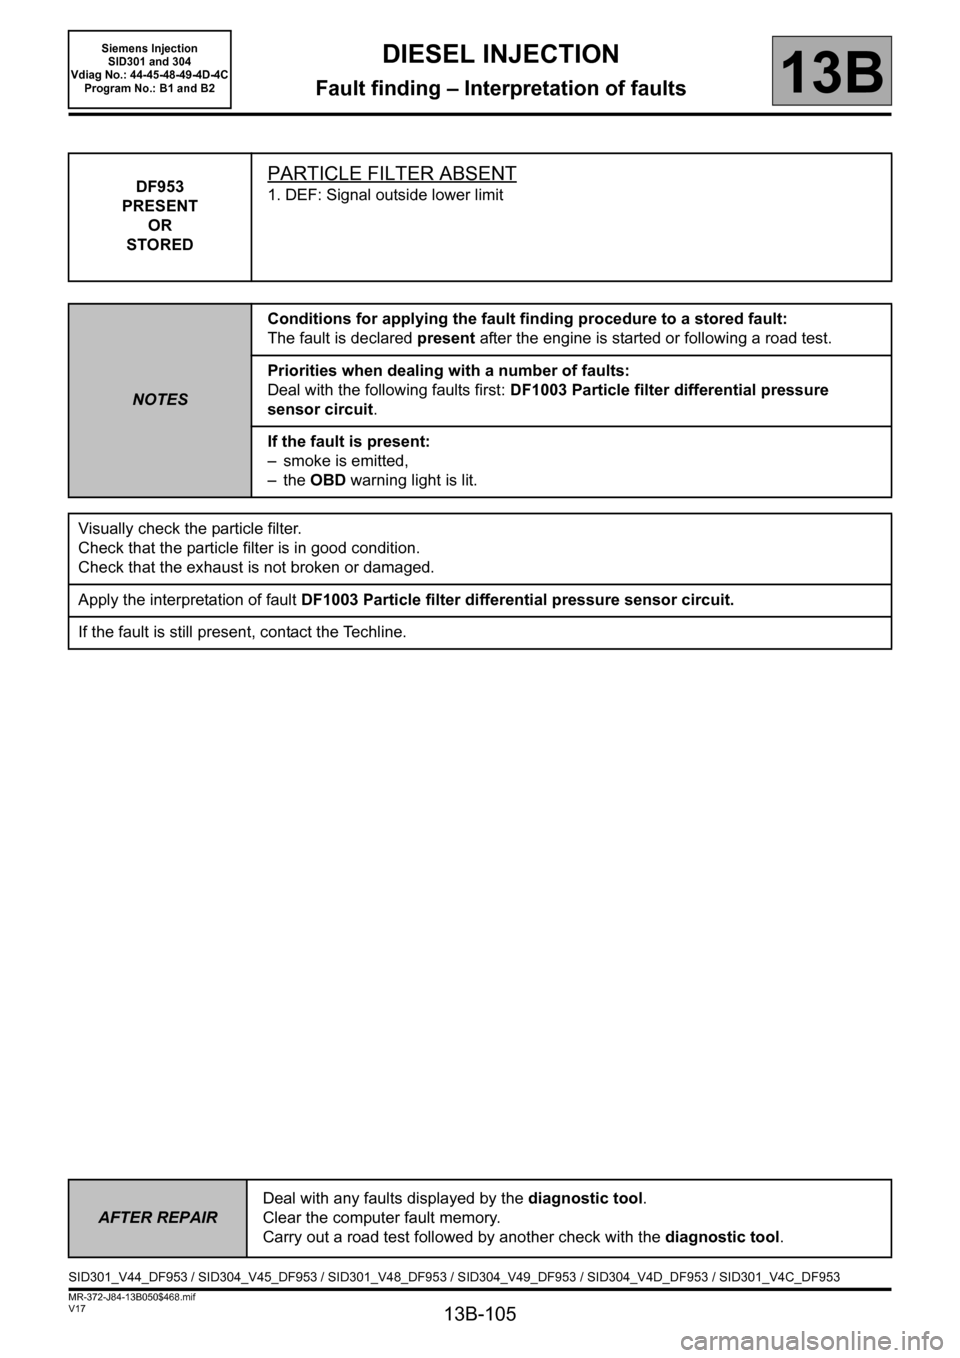 RENAULT SCENIC 2011 J95 / 3.G Engine And Peripherals Siemens Injection Workshop Manual, Page 105